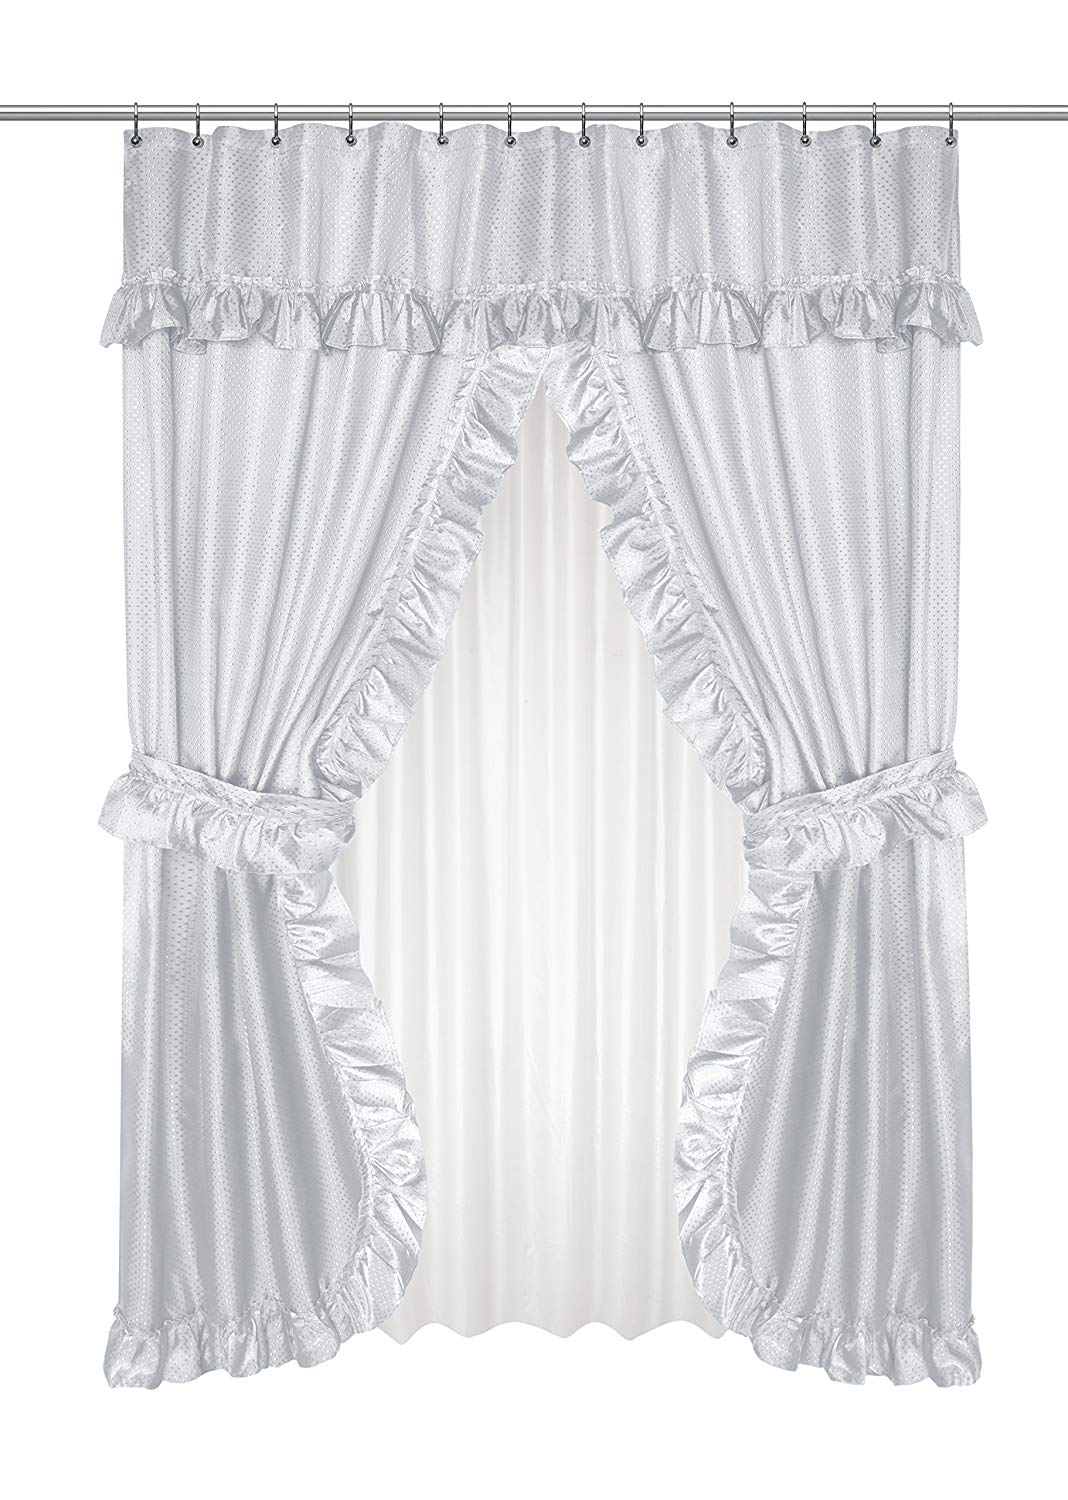 """Black Ruffled Double Swag Shower Curtain /& Liner 70/"""" x 72/"""" w//12 Roller Rings"""